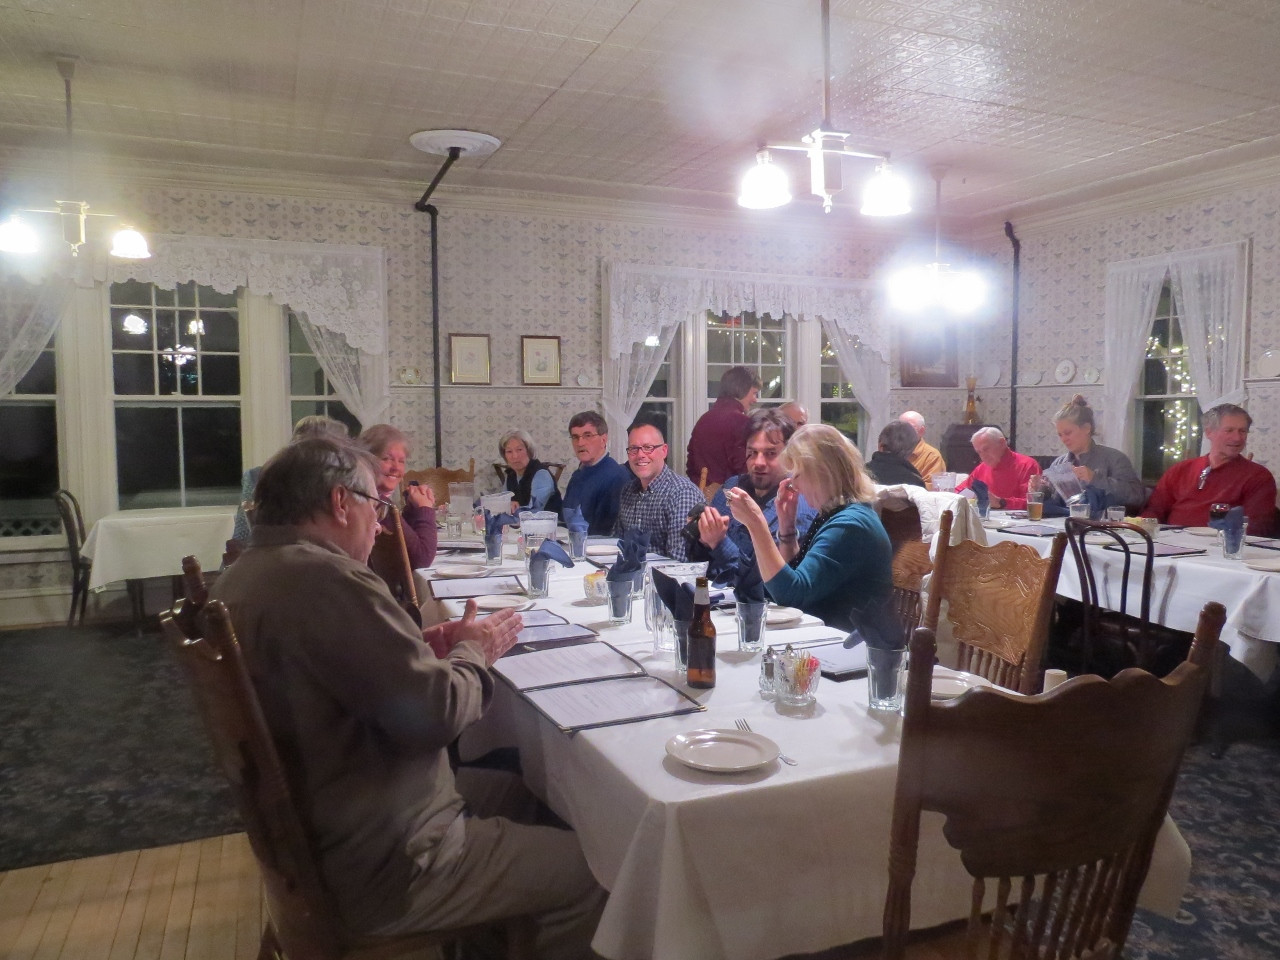 Birders fill the Adirondack Hotel Dining Room!